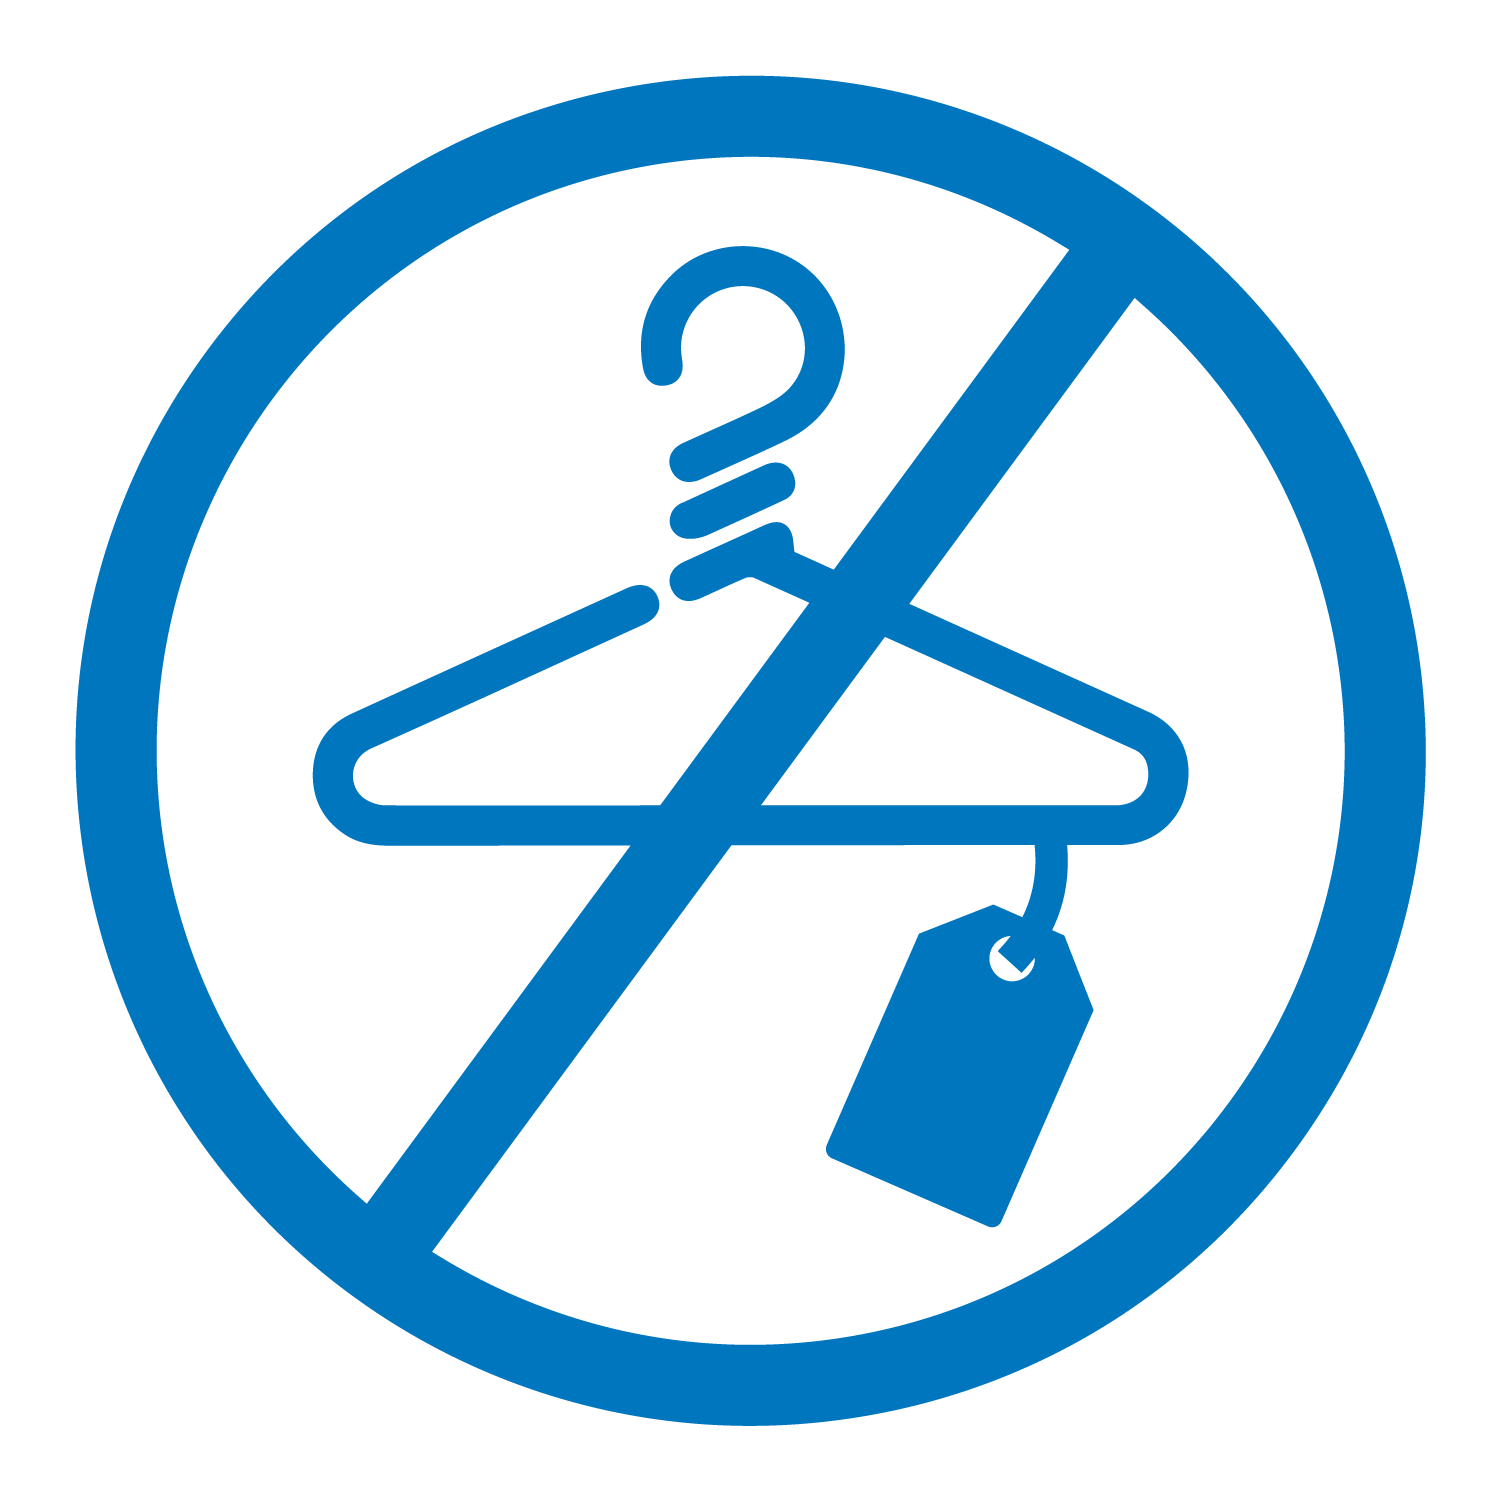 Flat lay blue icon of a circle with a line through it over a hanger and coat check tag